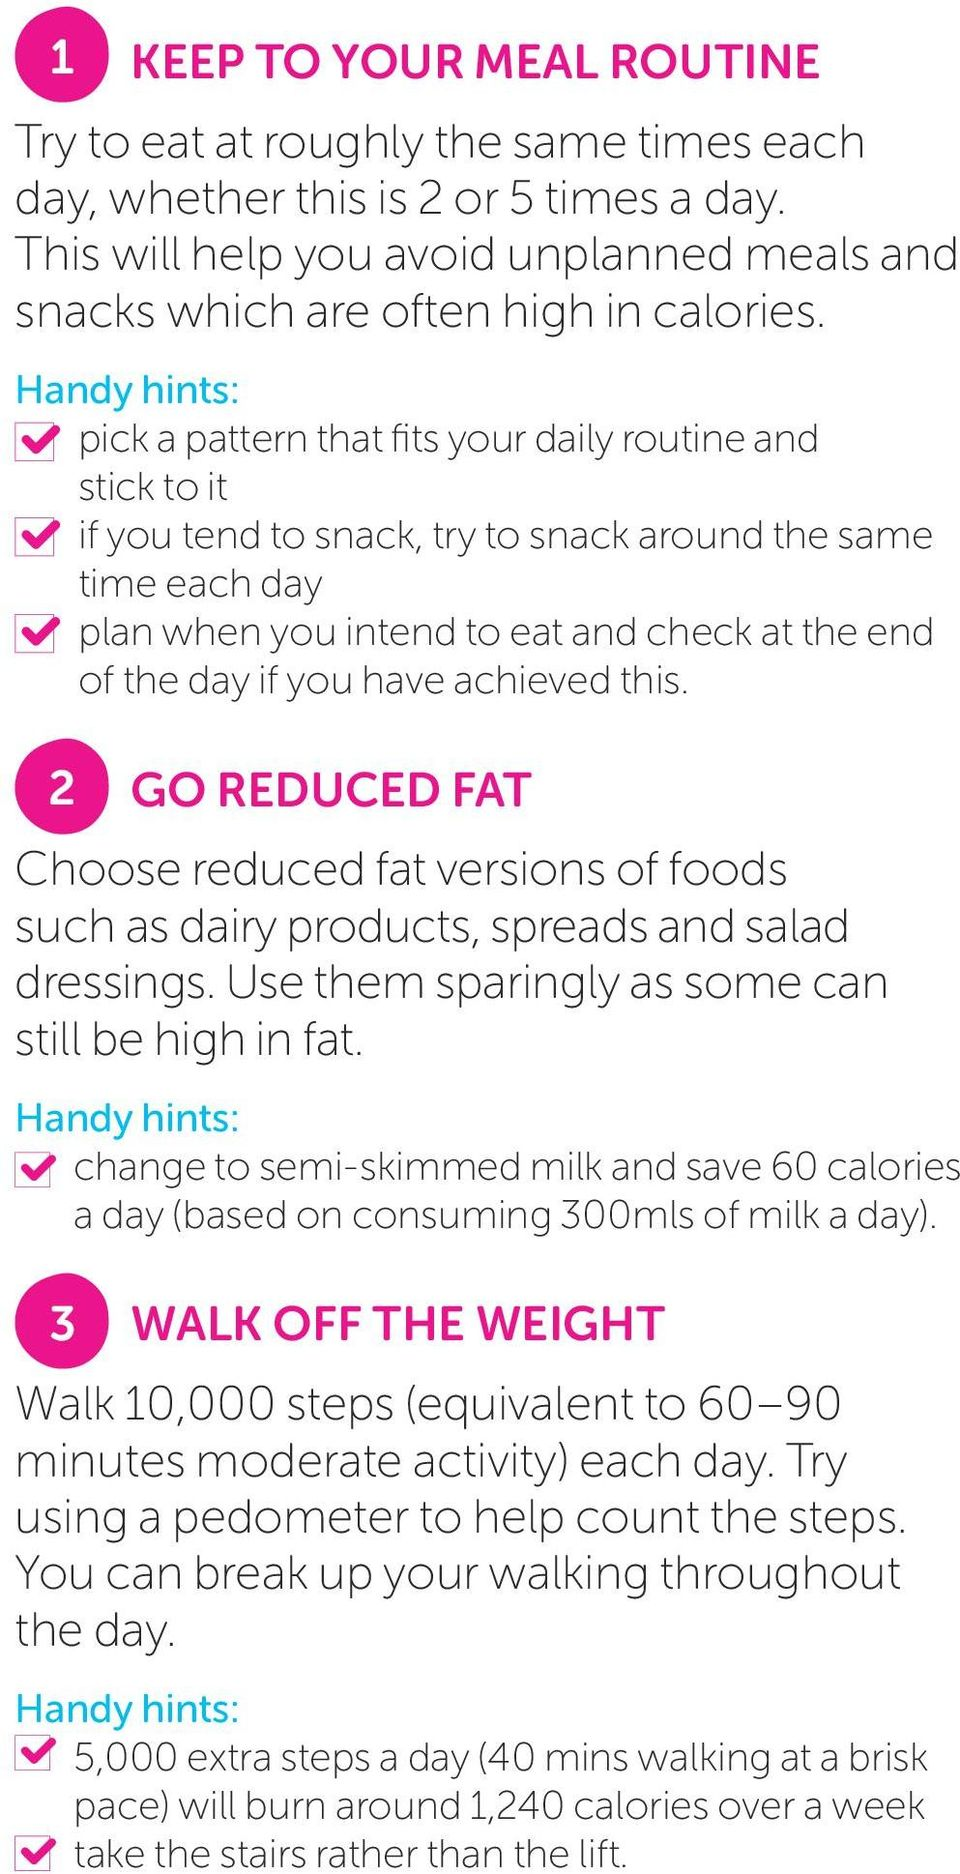 achieved this. 2 GO REDUCED FAT Choose reduced fat versions of foods such as dairy products, spreads and salad dressings. Use them sparingly as some can still be high in fat.